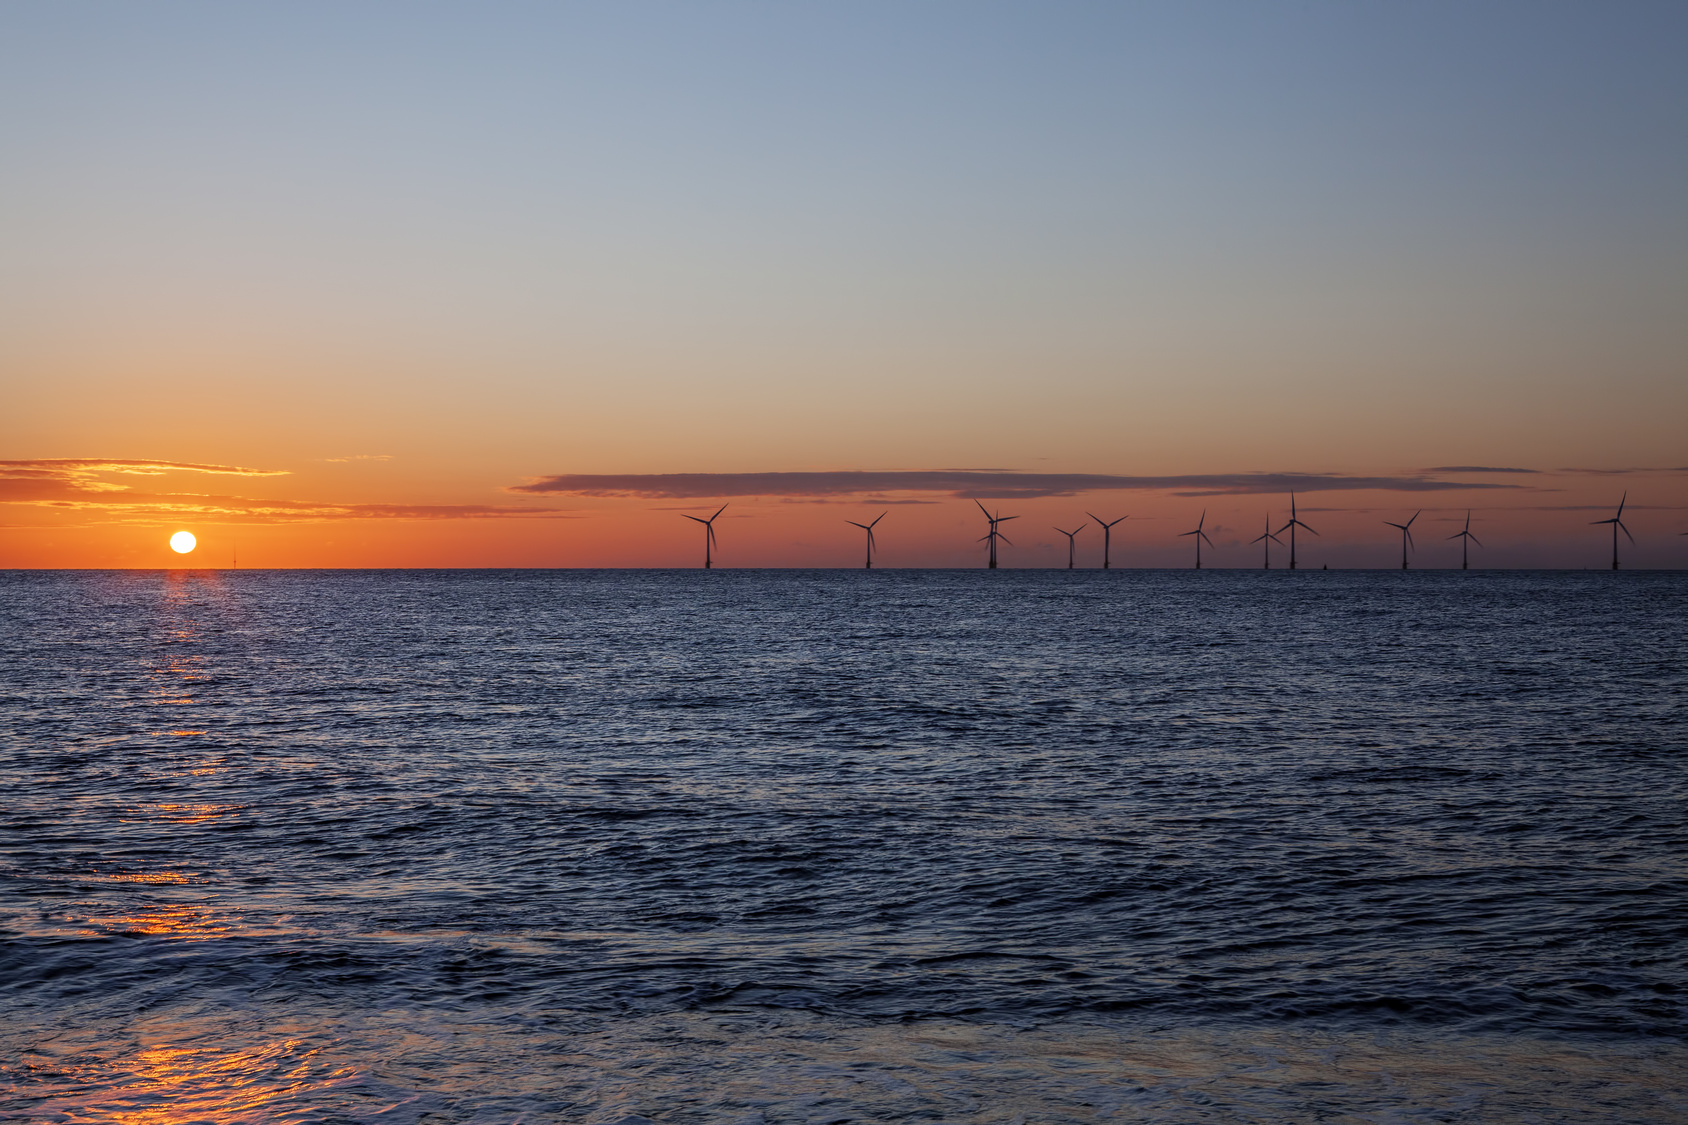 Renewable energy. Offshore wind farm on the horizon at sunrise. © Ian Dyball | Fotolia